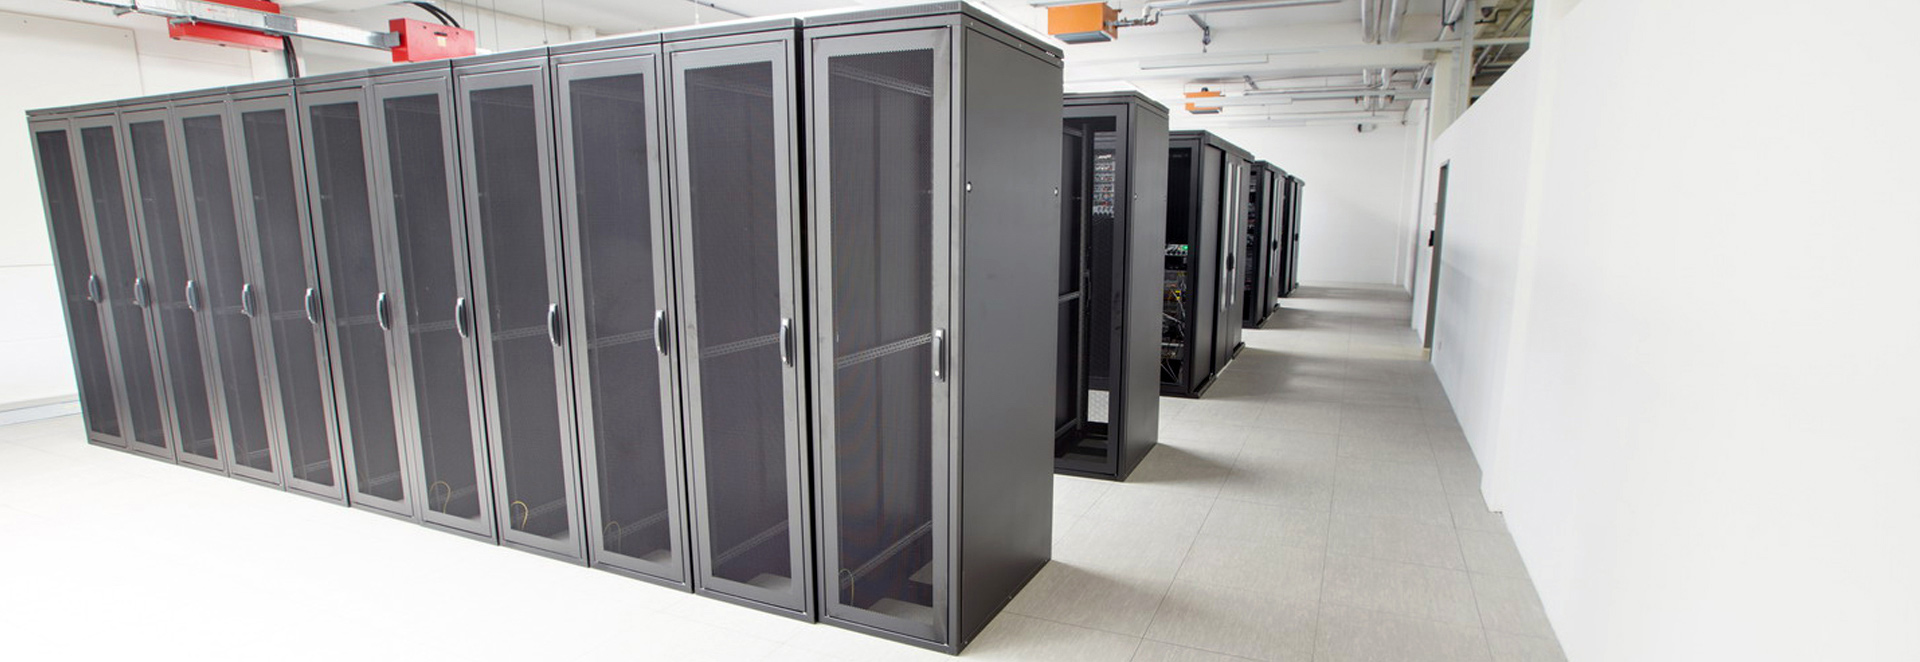 Datacenter FlameNetworks 5